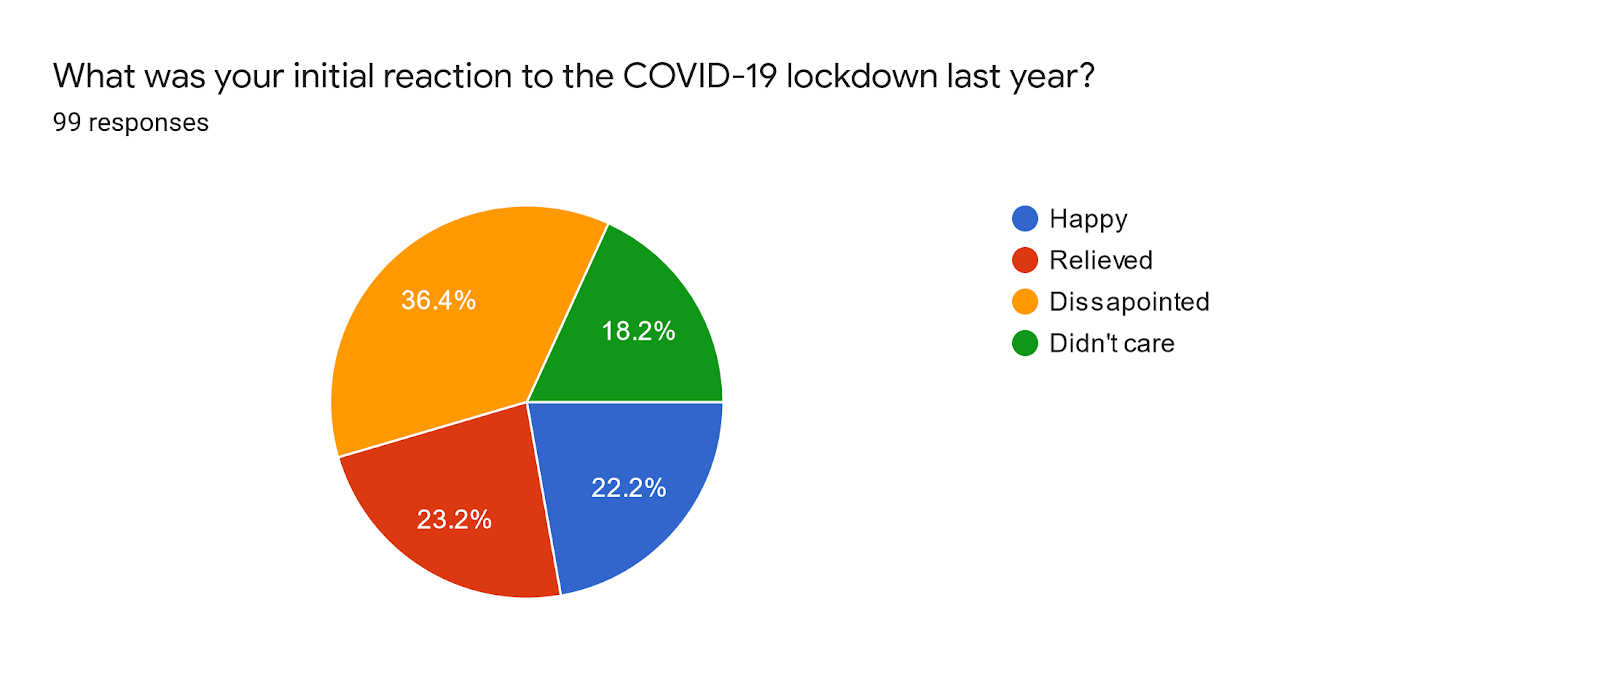 Forms response chart. Question title: What was your initial reaction to the COVID-19 lockdown last year?. Number of responses: 99 responses.